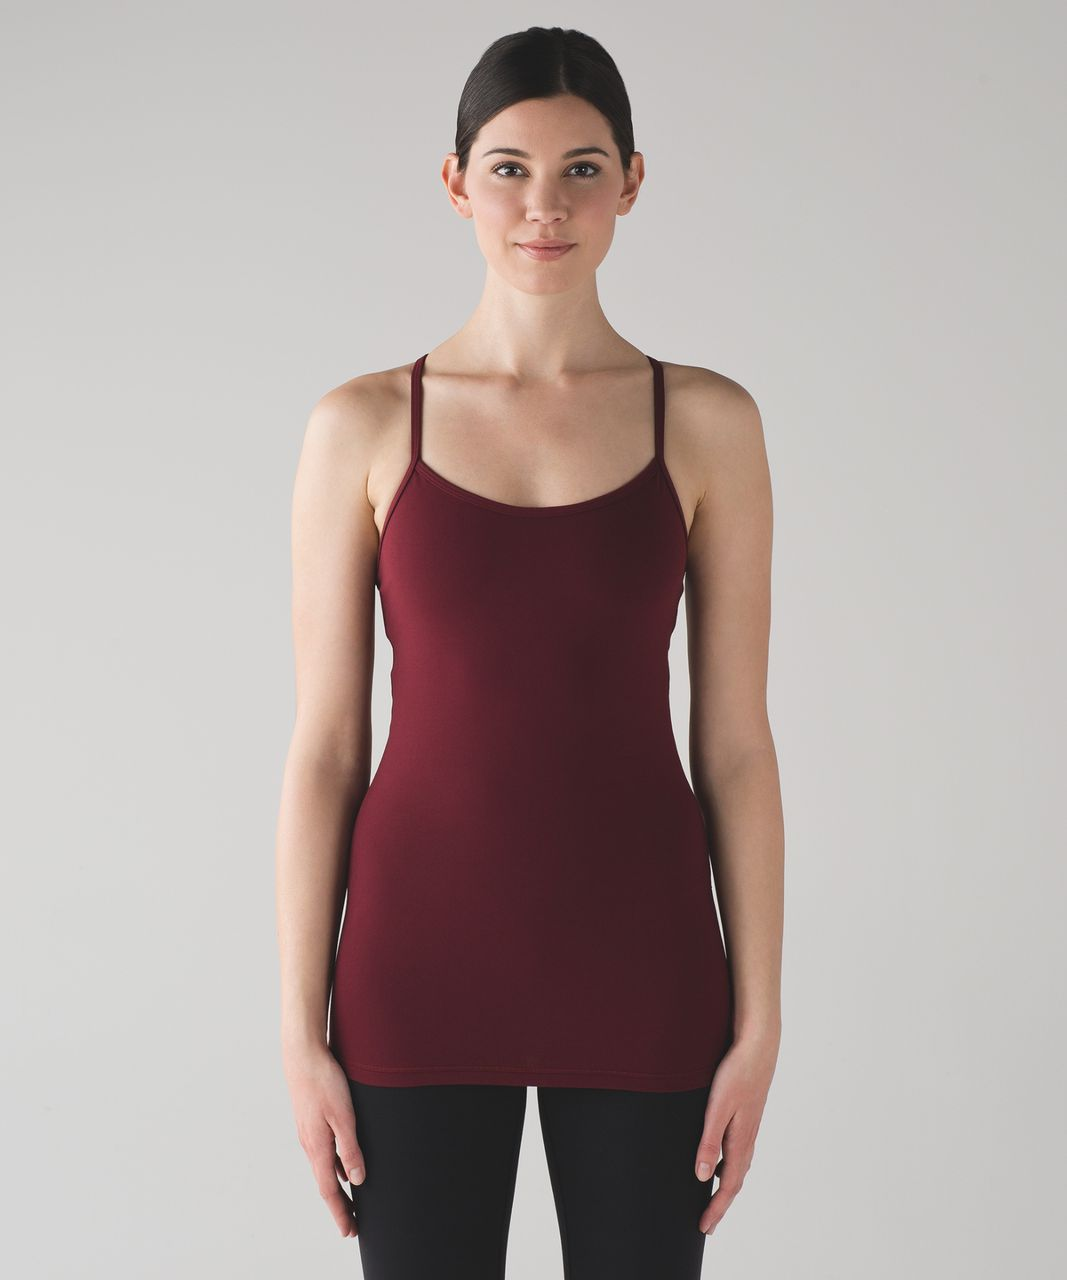 Lululemon Power Y Tank (Luon) - Deep Rouge